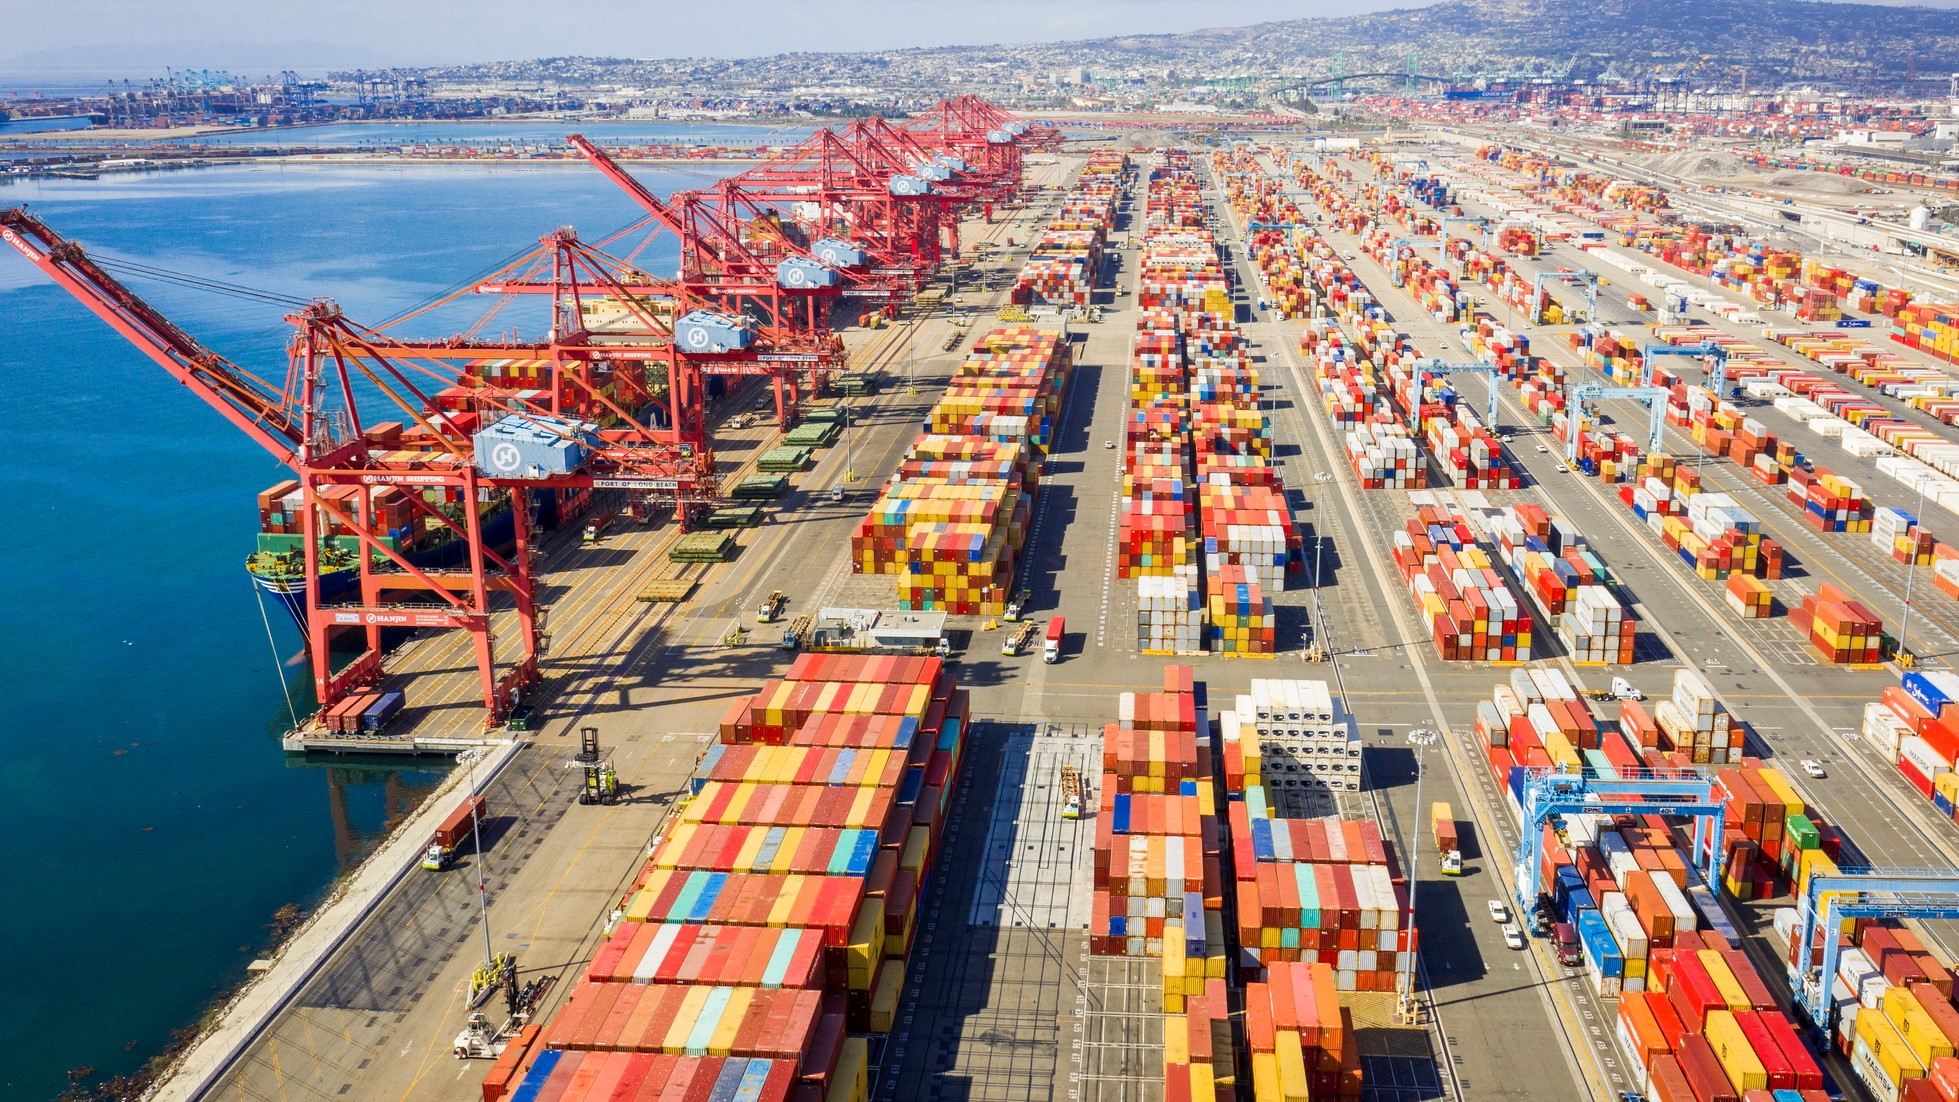 Maersk Line cashed $ 1 Bn in 2018 on demurrage & detention charges 2